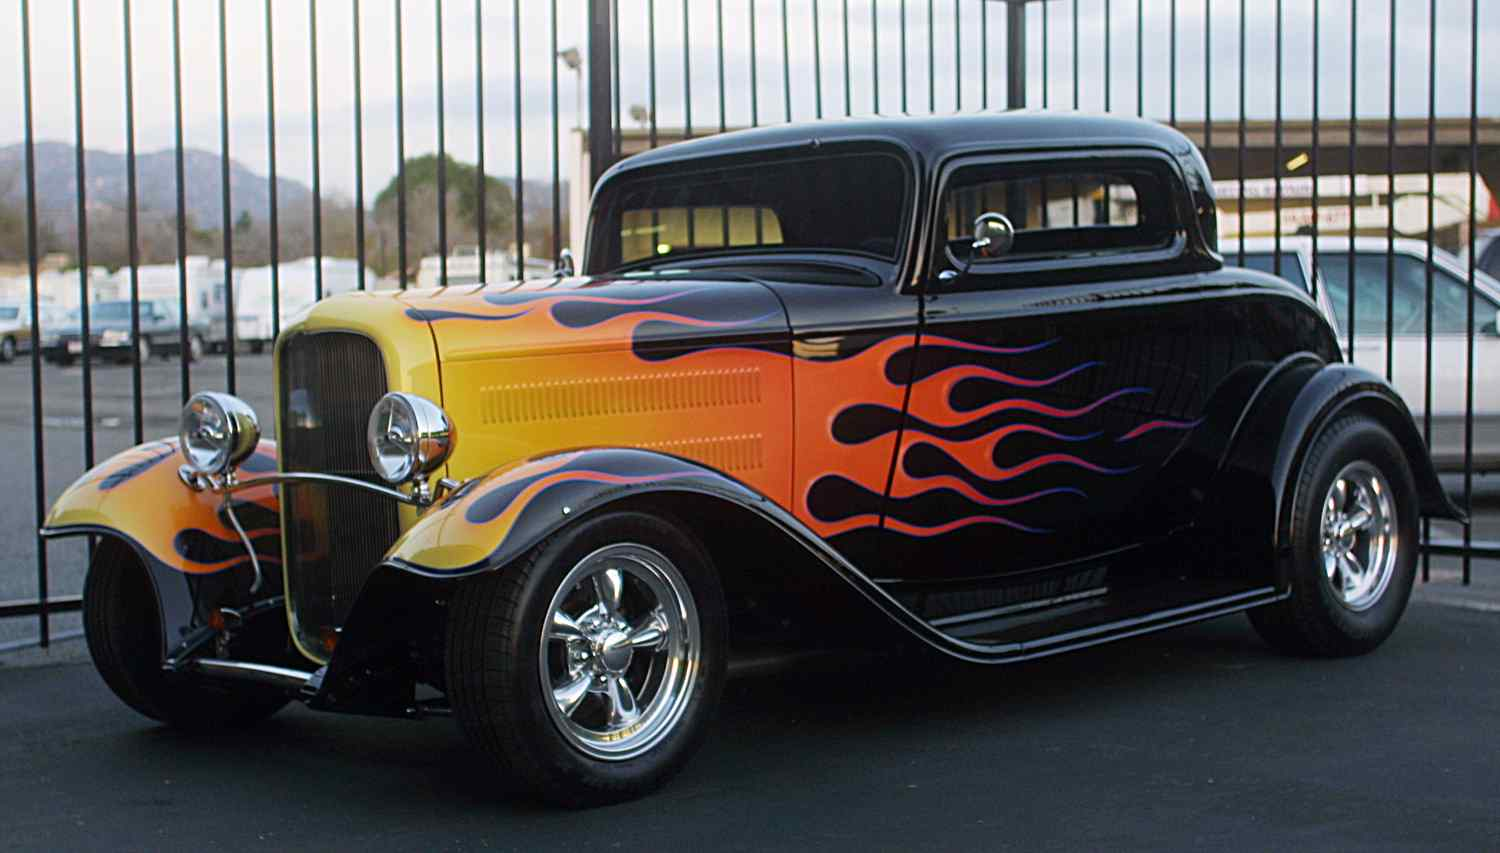 Classic Hot Rod Car Pictures